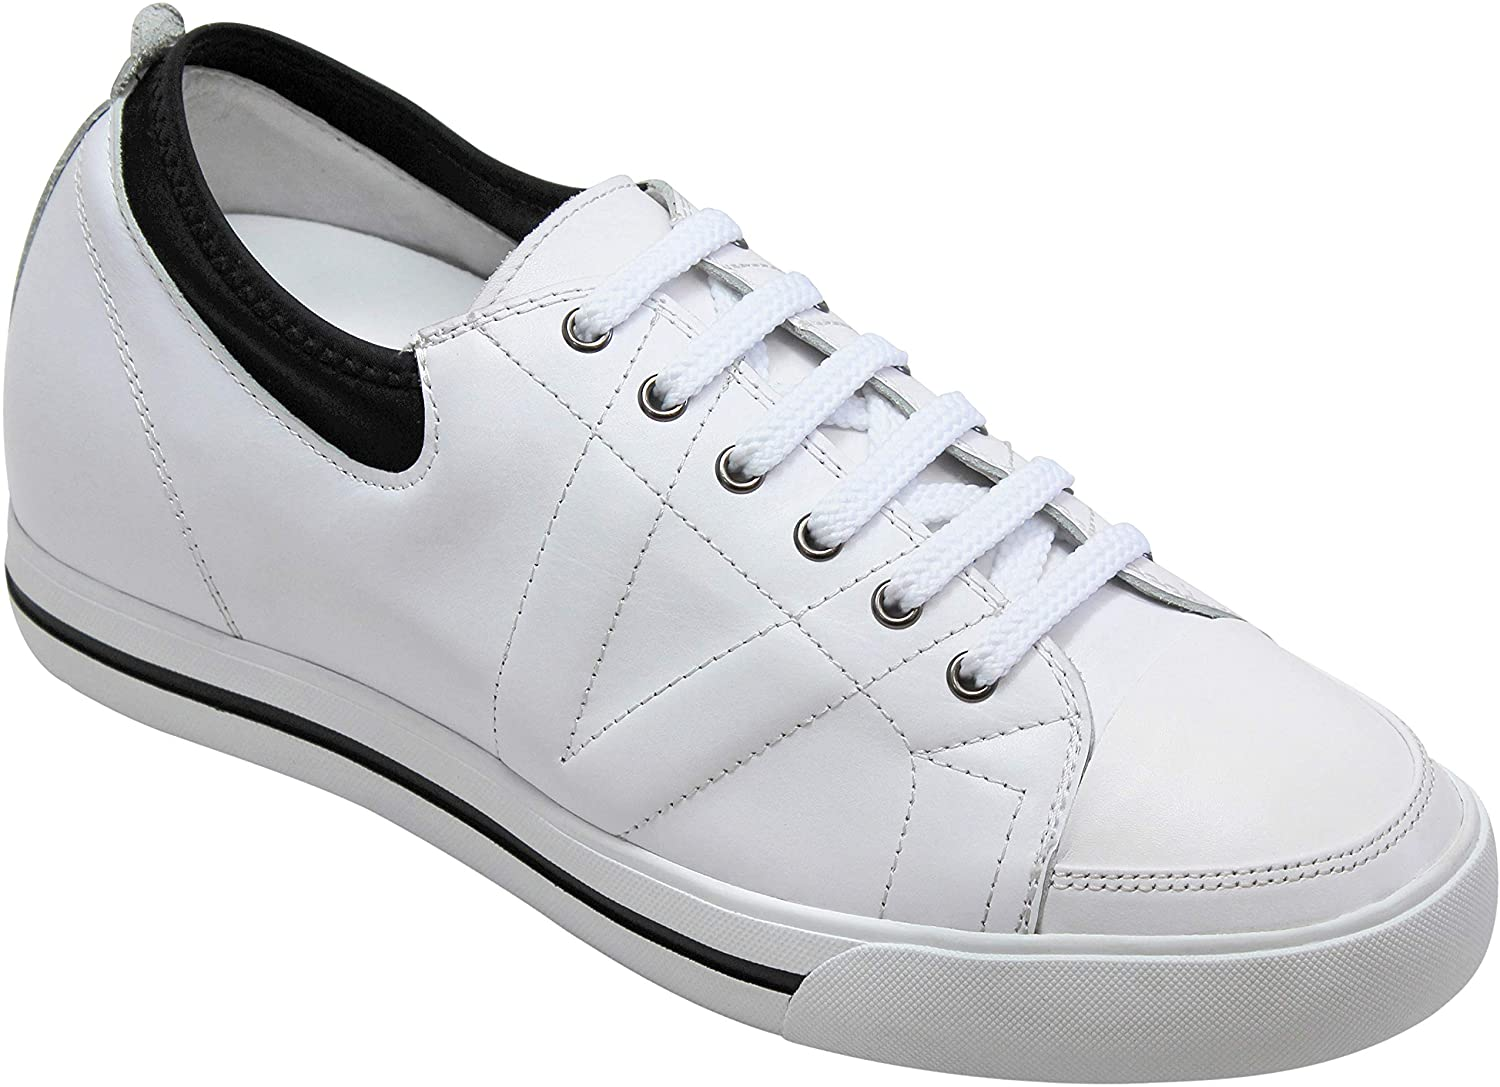 TOTO Men's Invisible Height Increasing Elevator Shoes - White/Black Leather Lace-up Sneakers - 2.4 Inches Taller - D8171